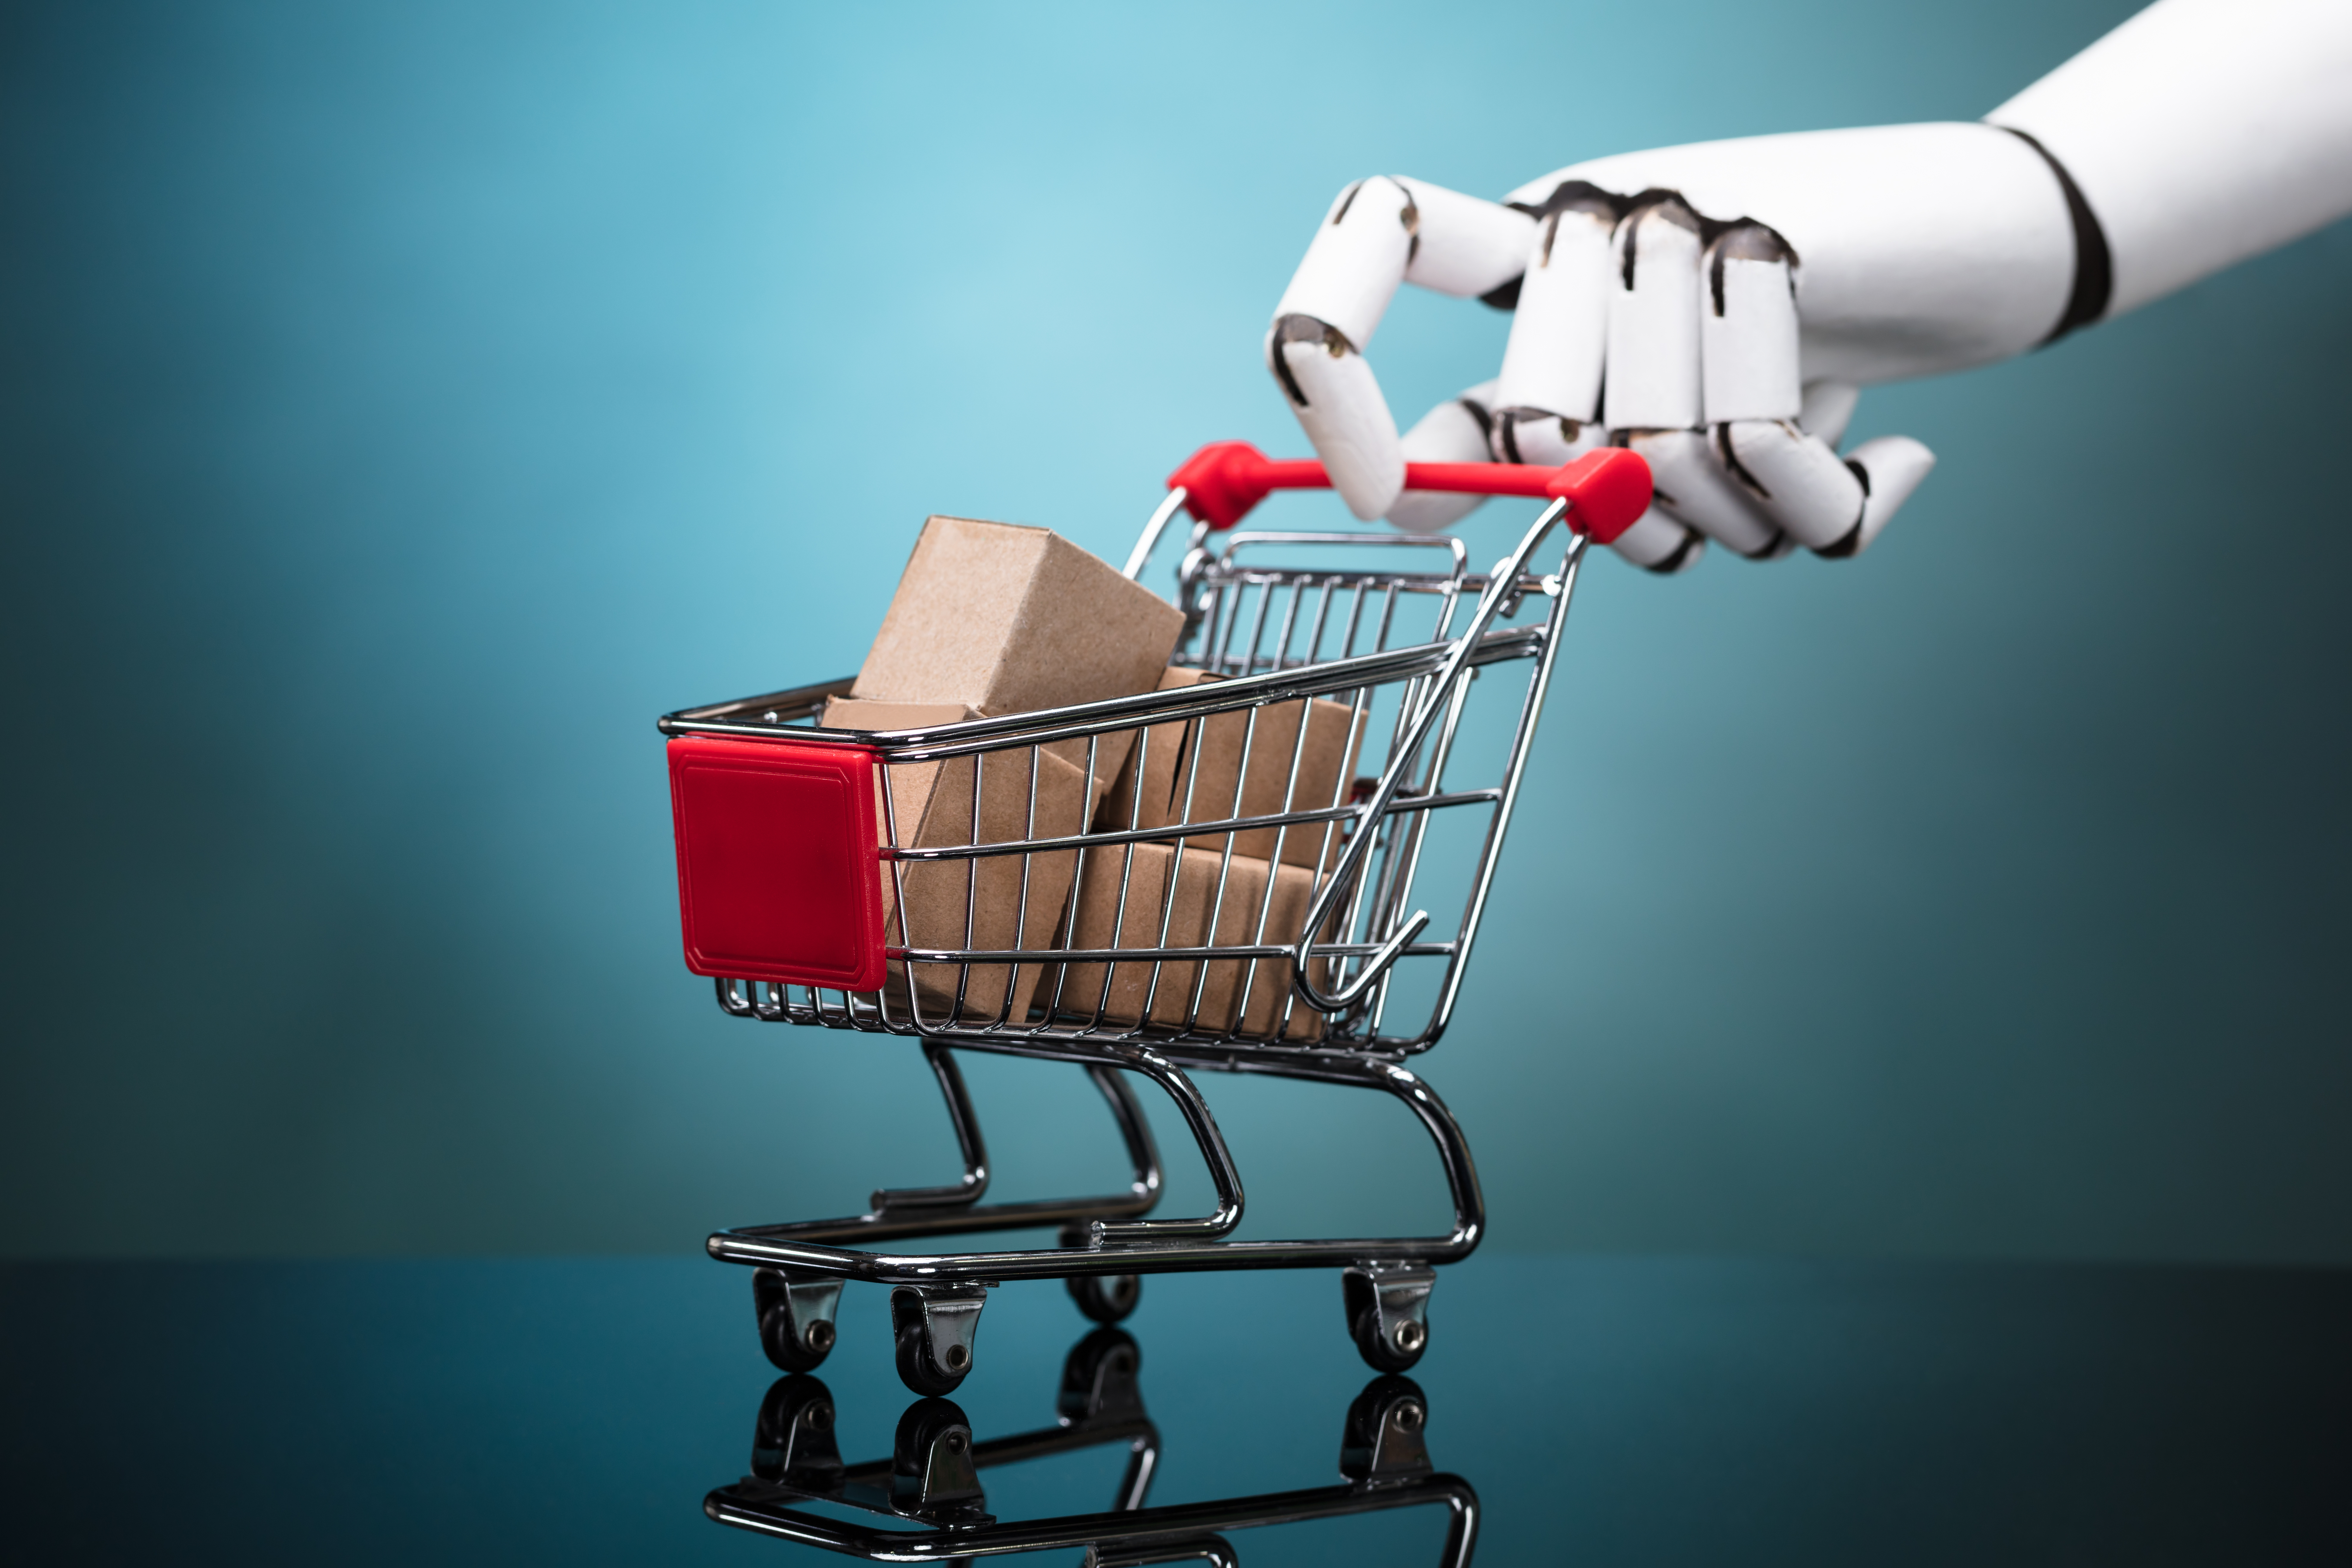 Sensormatic Solutions conducted a survey of consumers, finding that a significant portion may be turned off by the presence of robot assistants in-store.